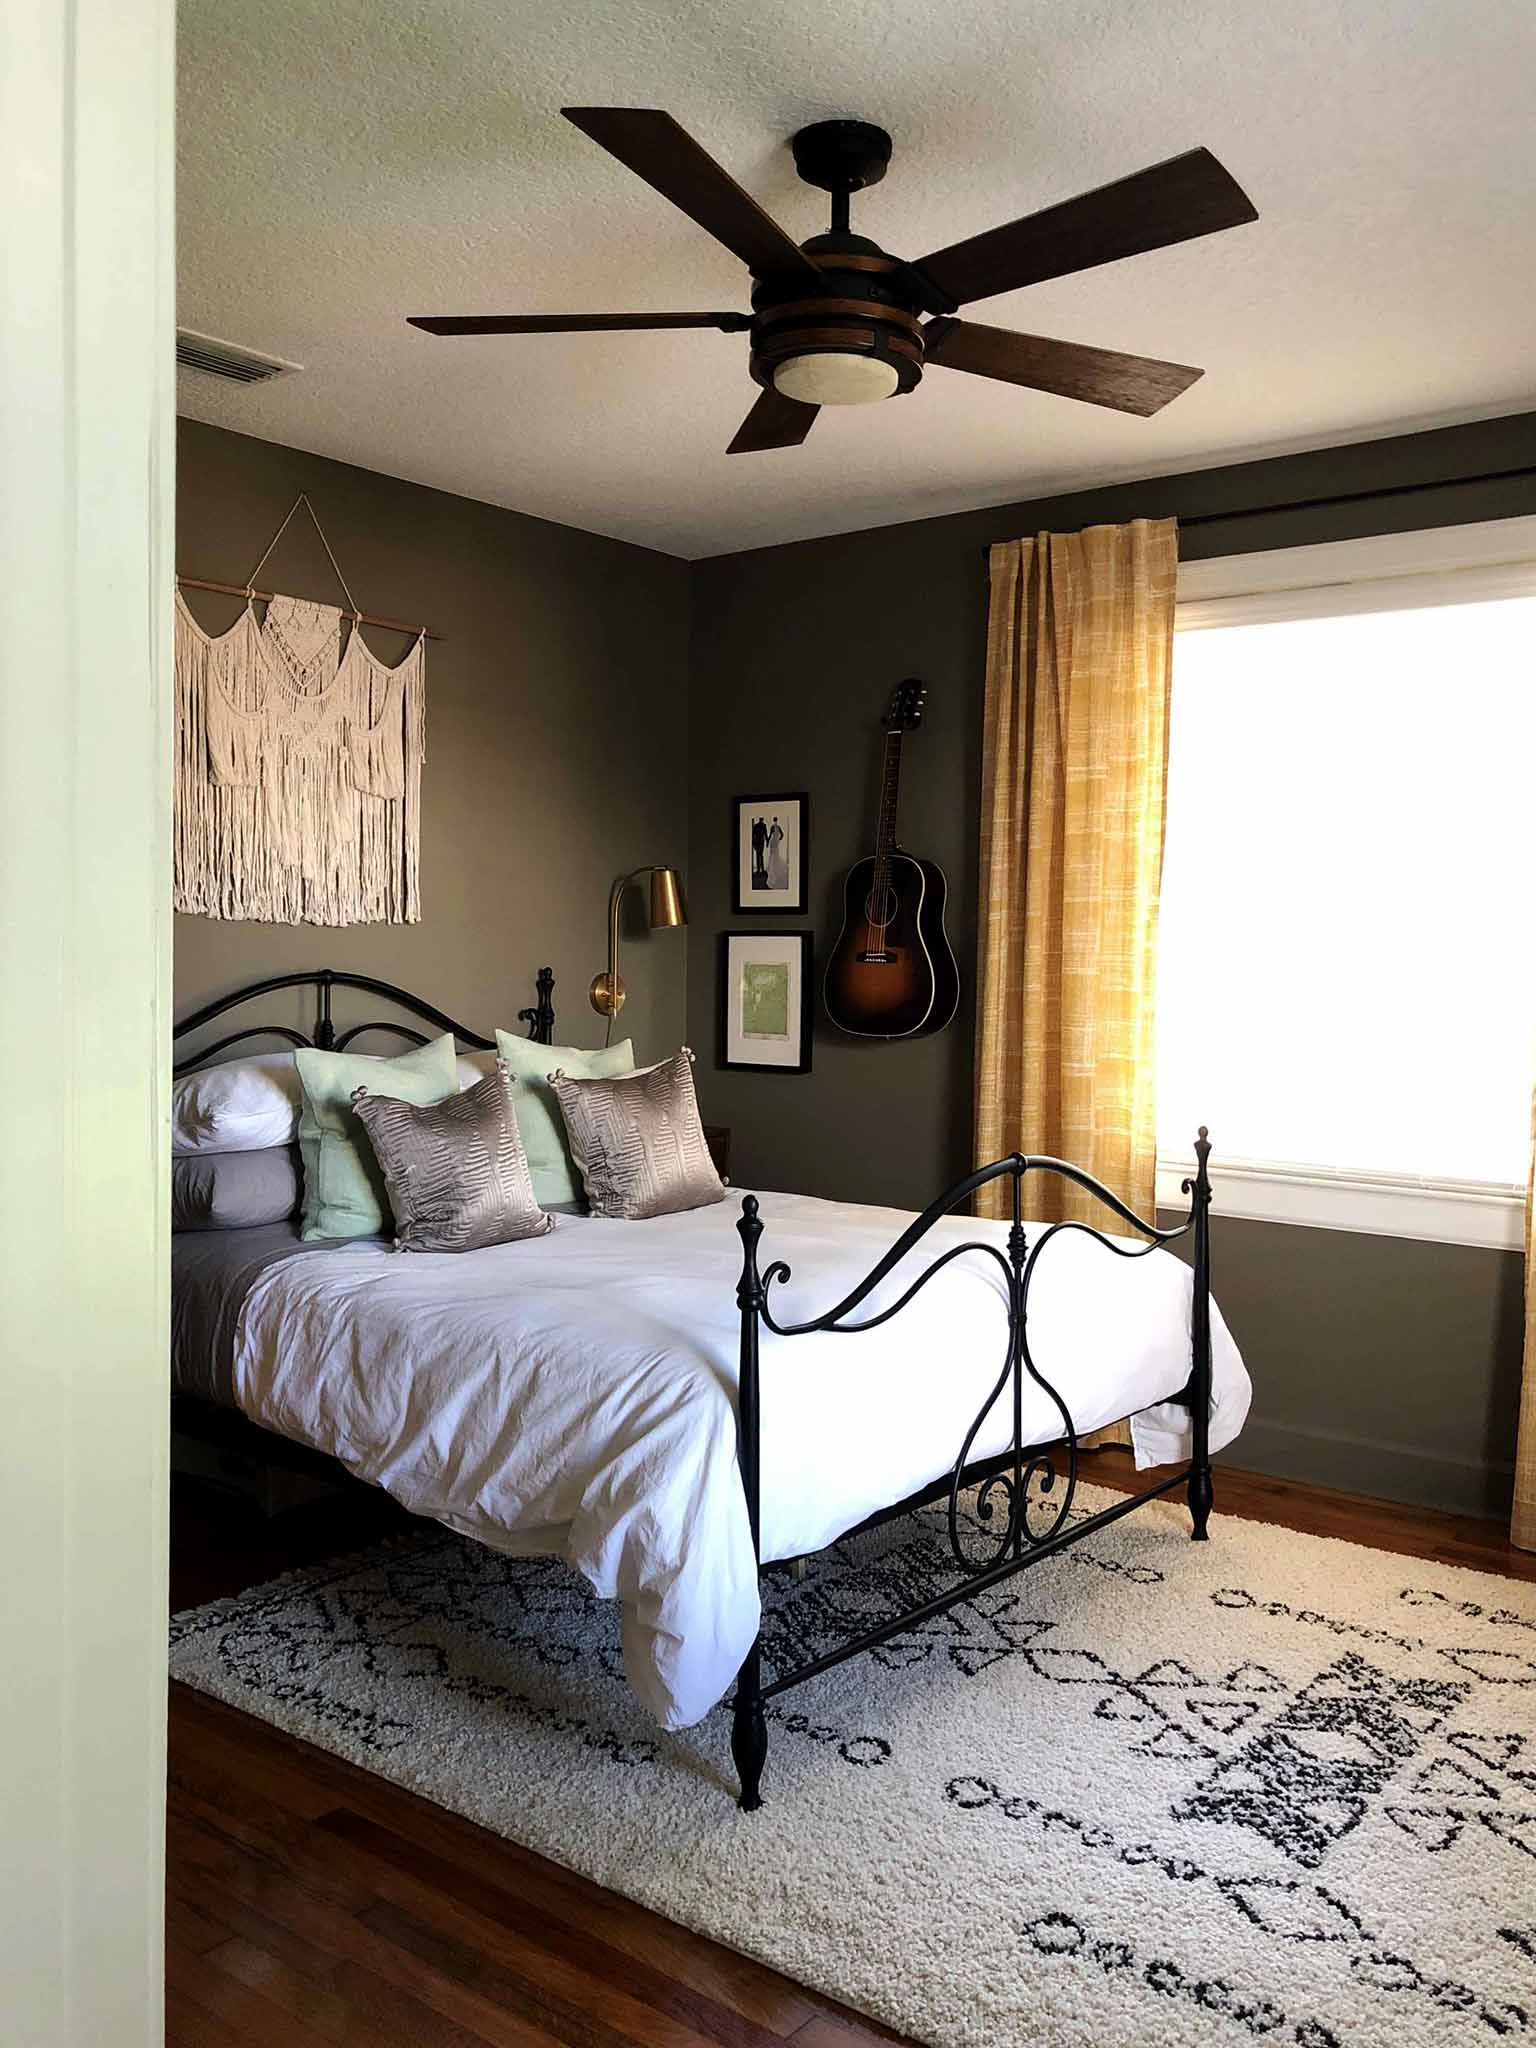 One Room Challenge Master Bedroom - That Homebird Life Blog